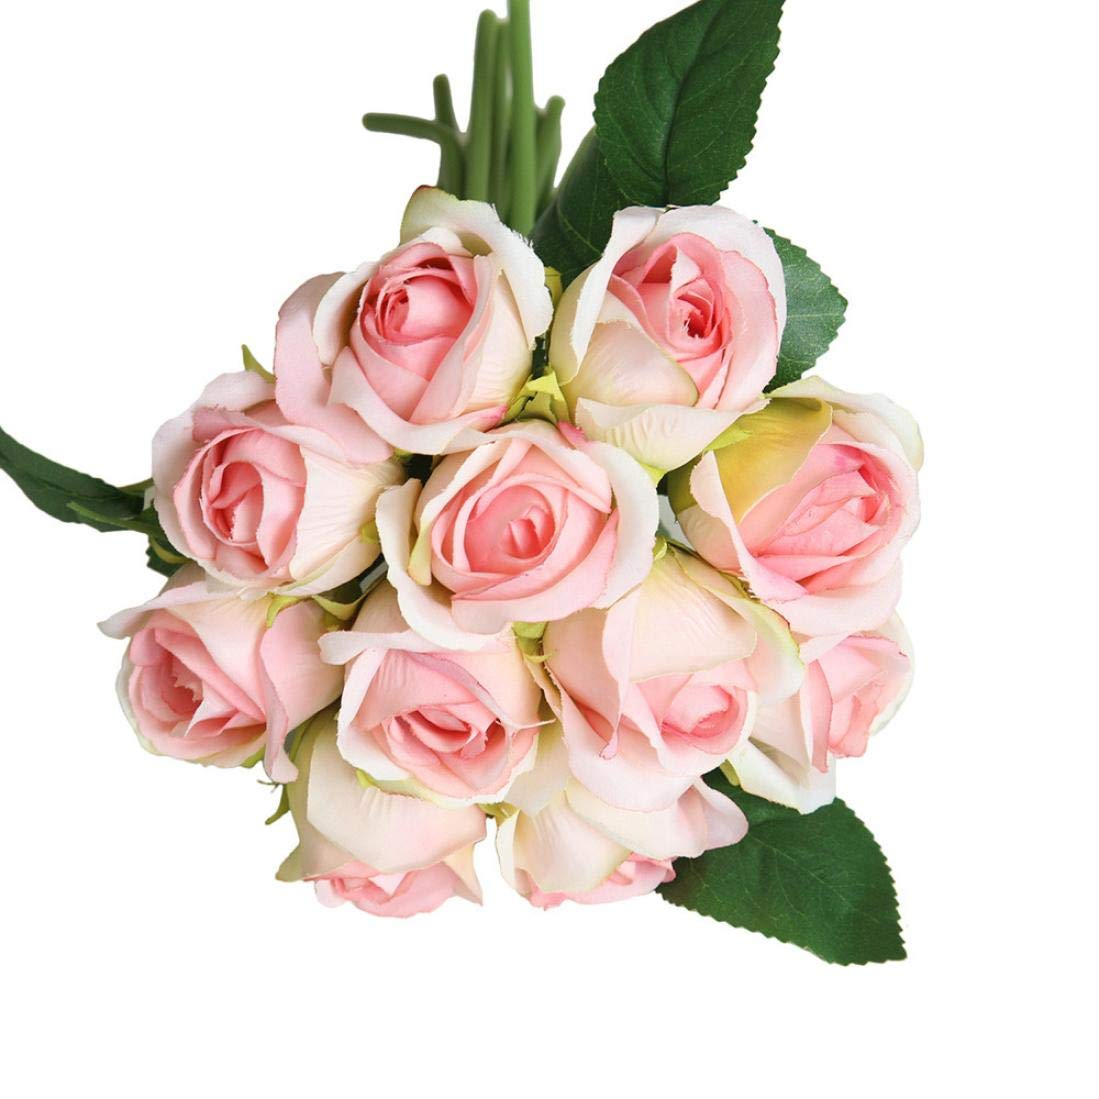 Artificial Flowers, MaxFox 11 Heads Fake Rose Bouquet Bridal Flower Bouquets Home Office Wedding Party Decor